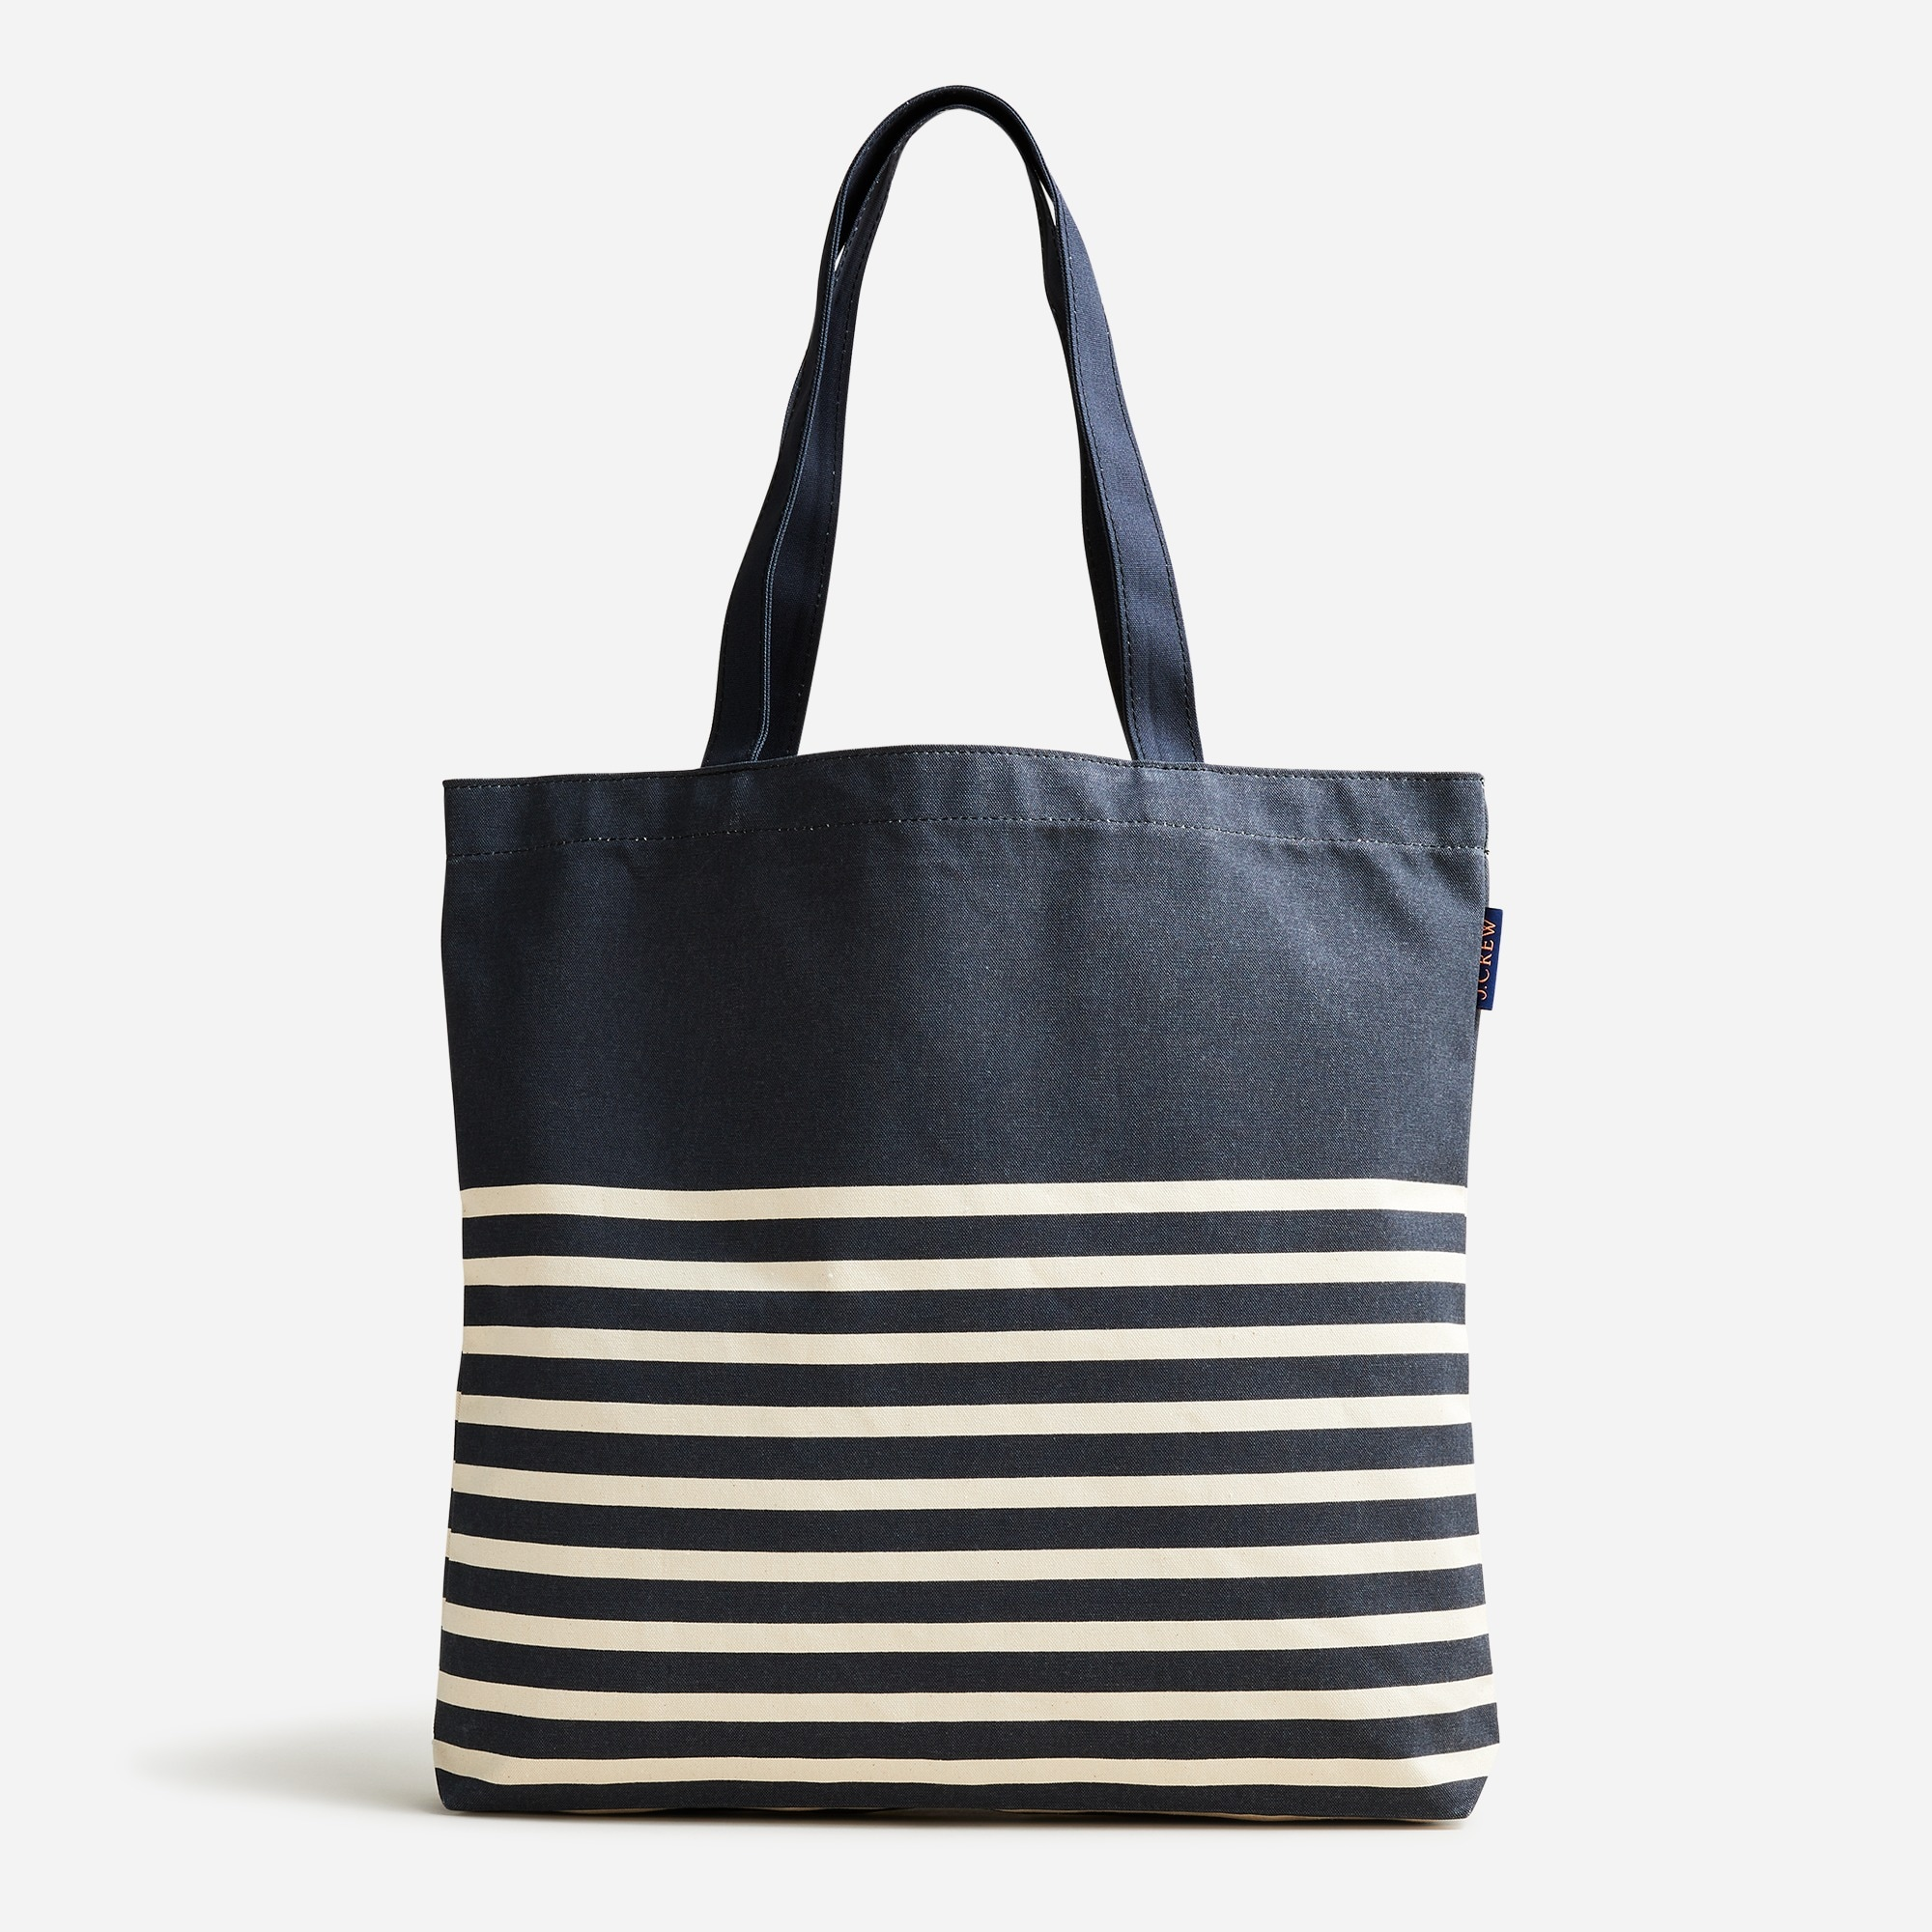 Reusable everyday tote women bags c